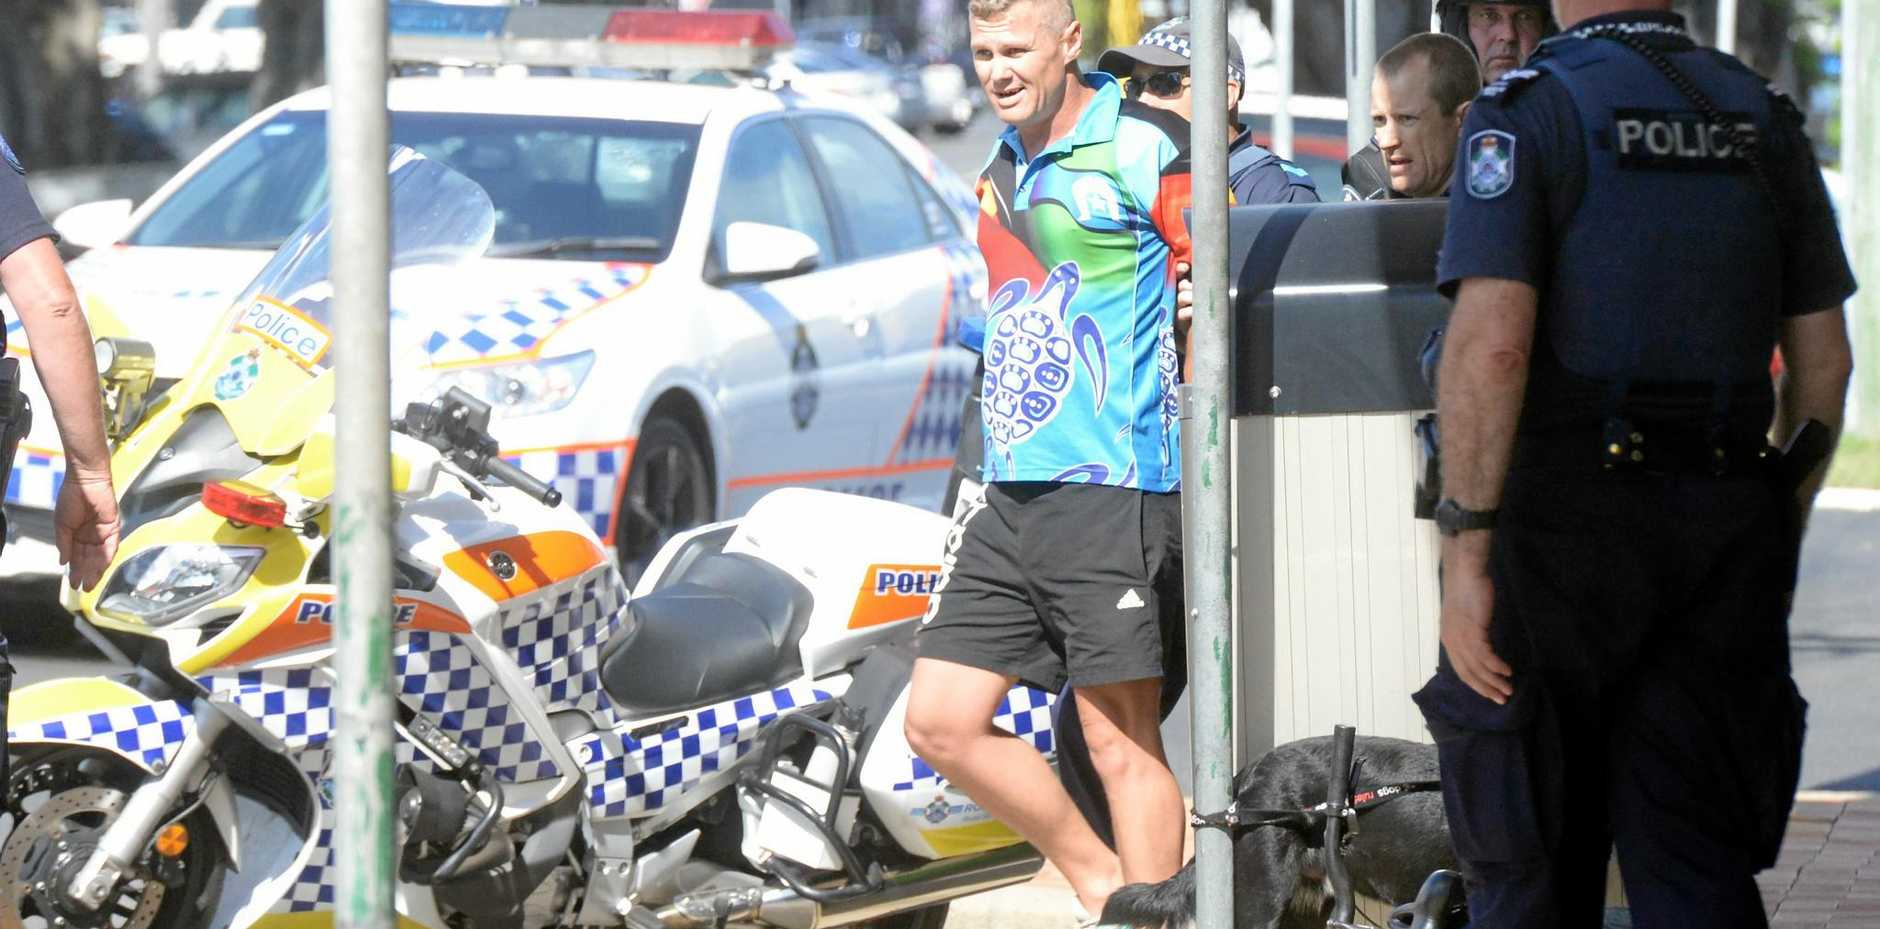 CITY CHASE: A man was arrested after police chased him on foot through the CBD this afternoon.